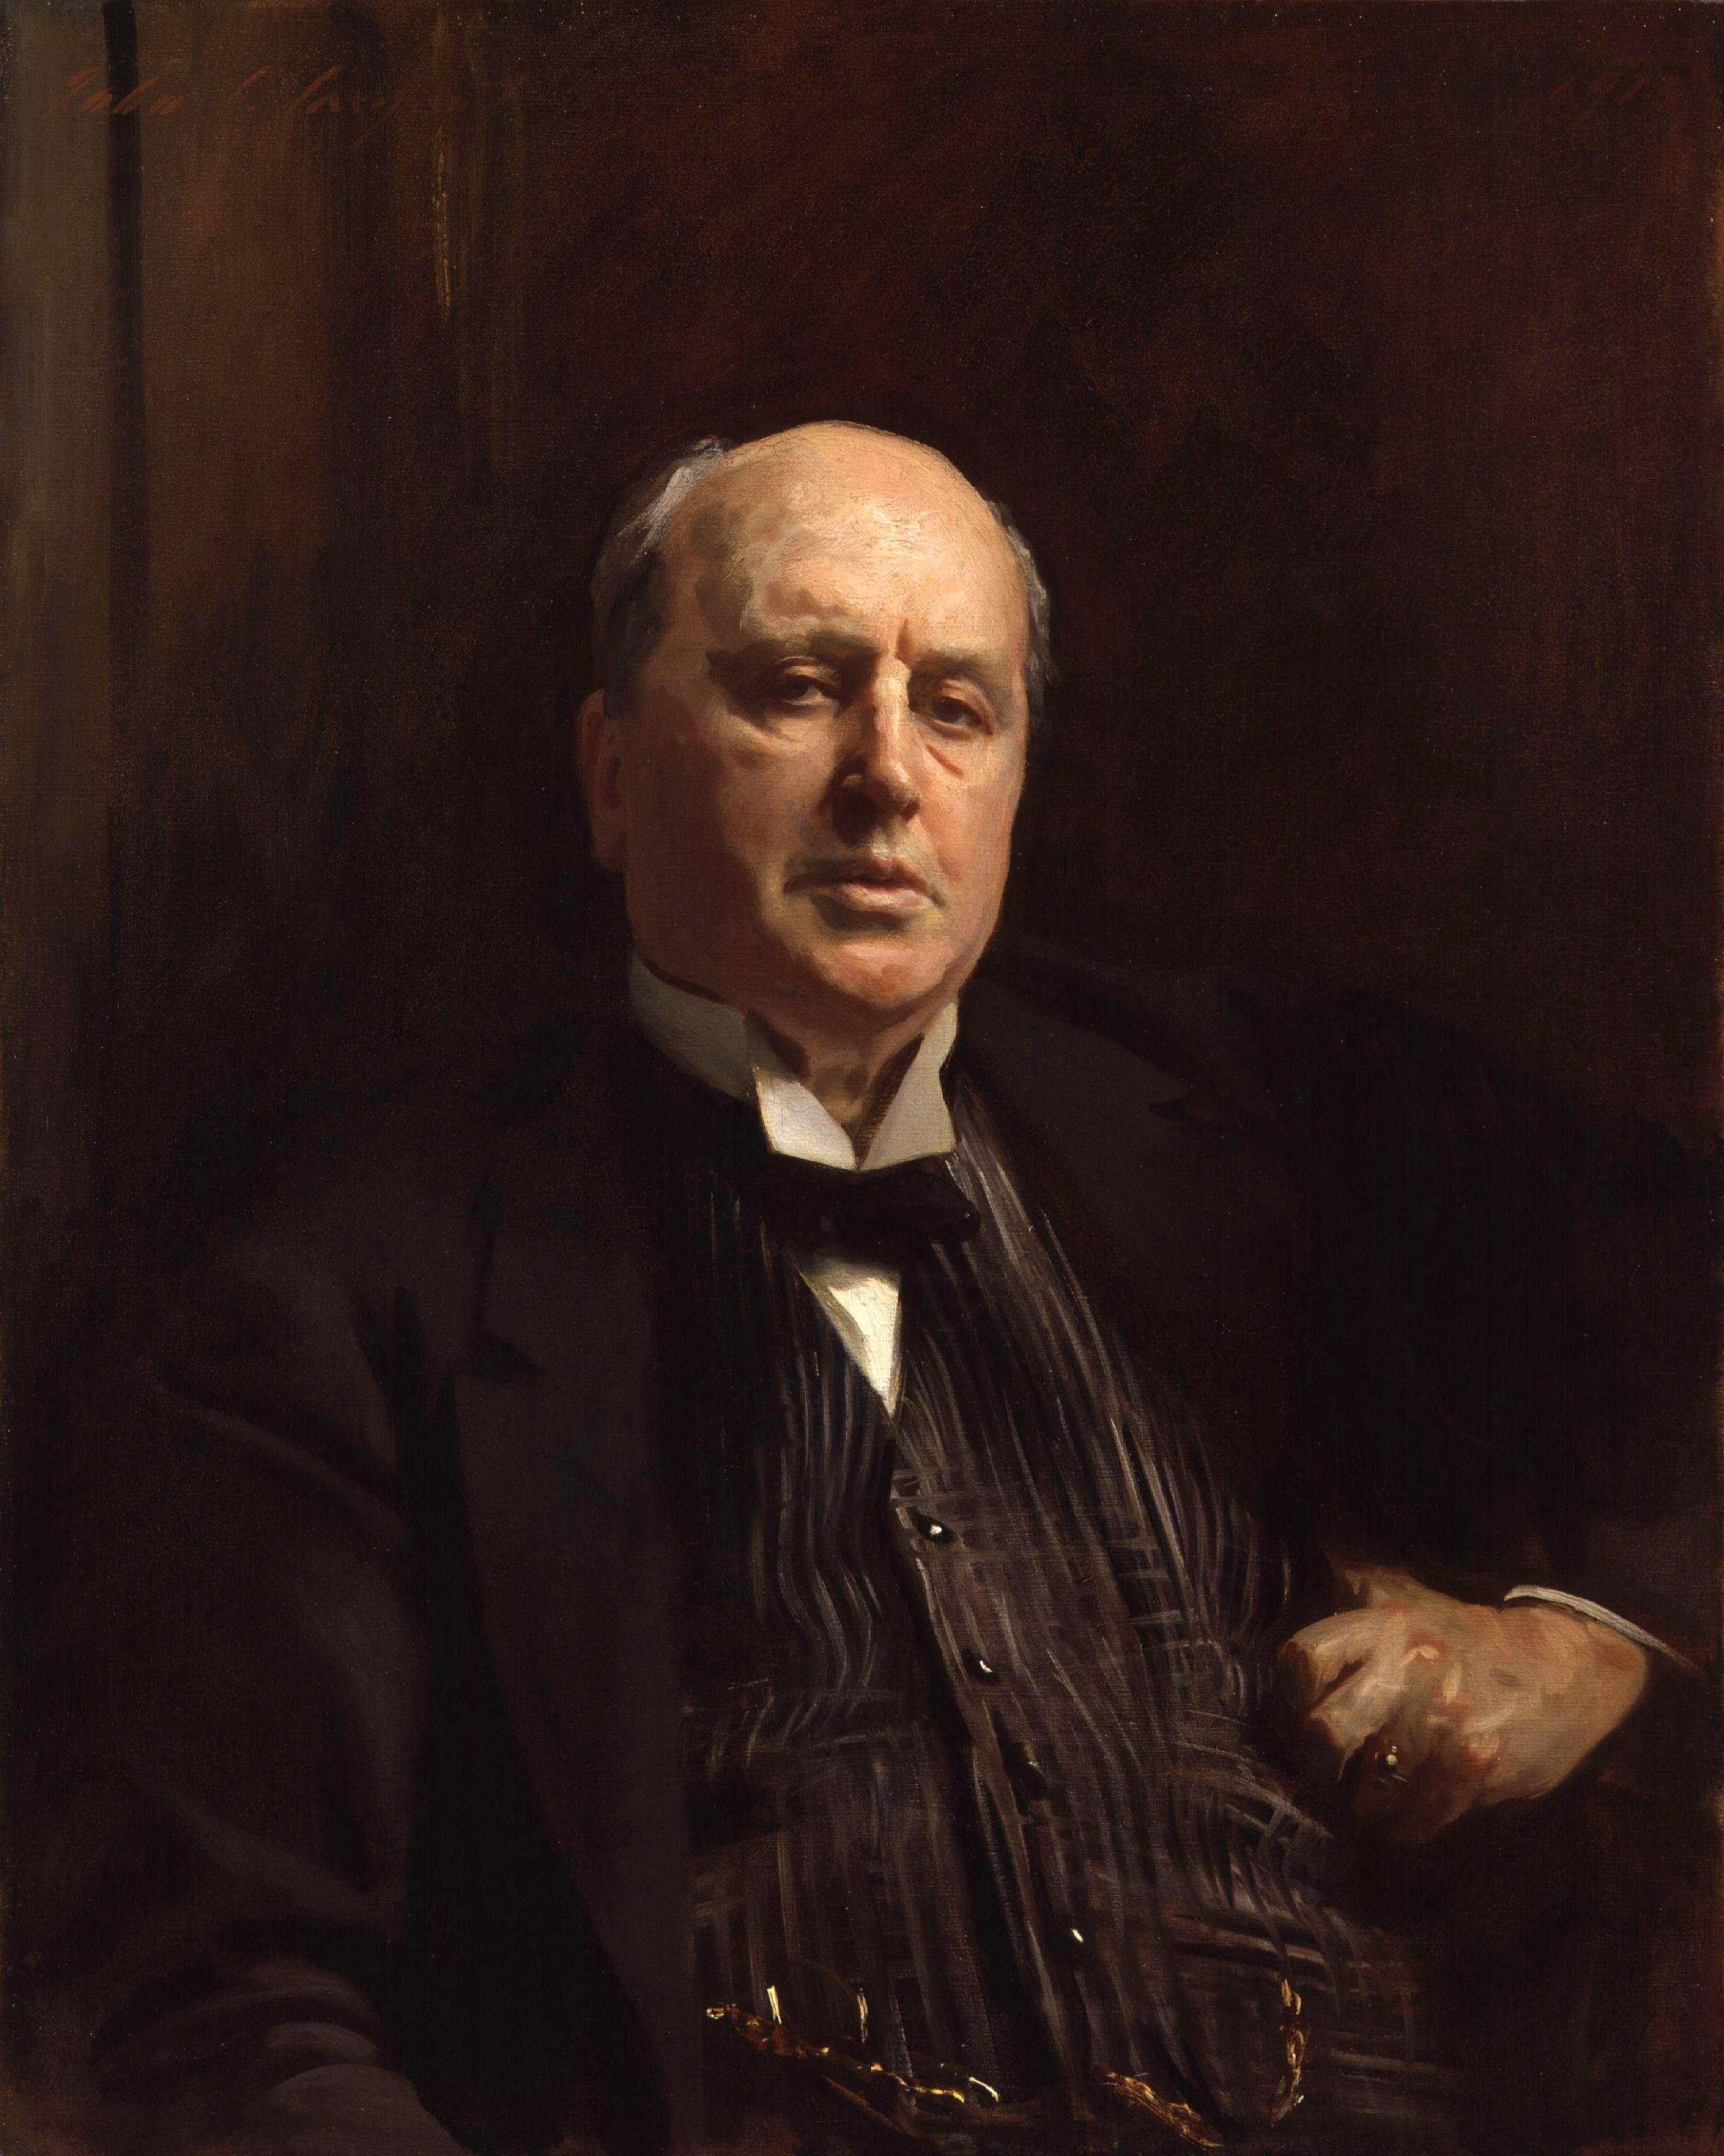 Description Henry James by John Singer Sargent cleaned.jpg